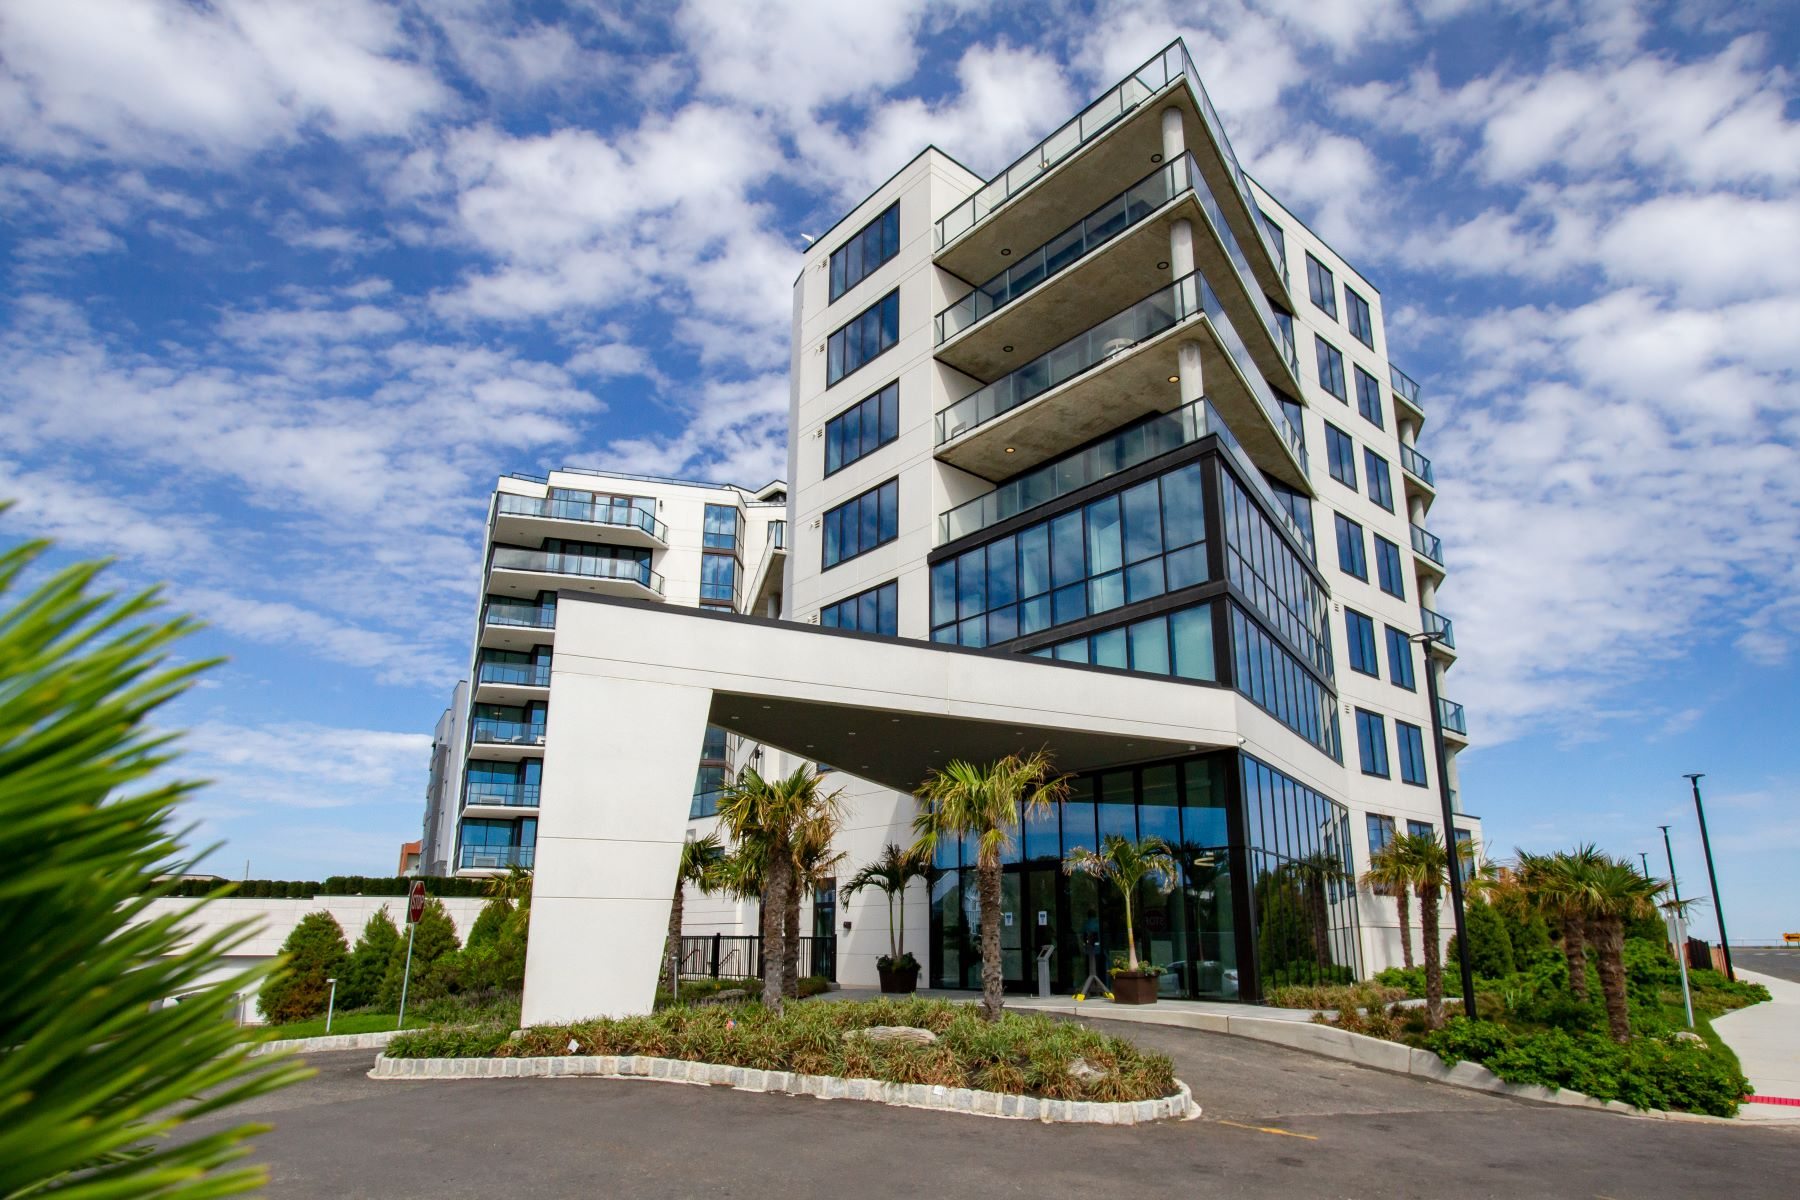 Condominiums for Sale at South Beach at Long Branch 350 Ocean Avenue 202S, Long Branch, New Jersey 07740 United States